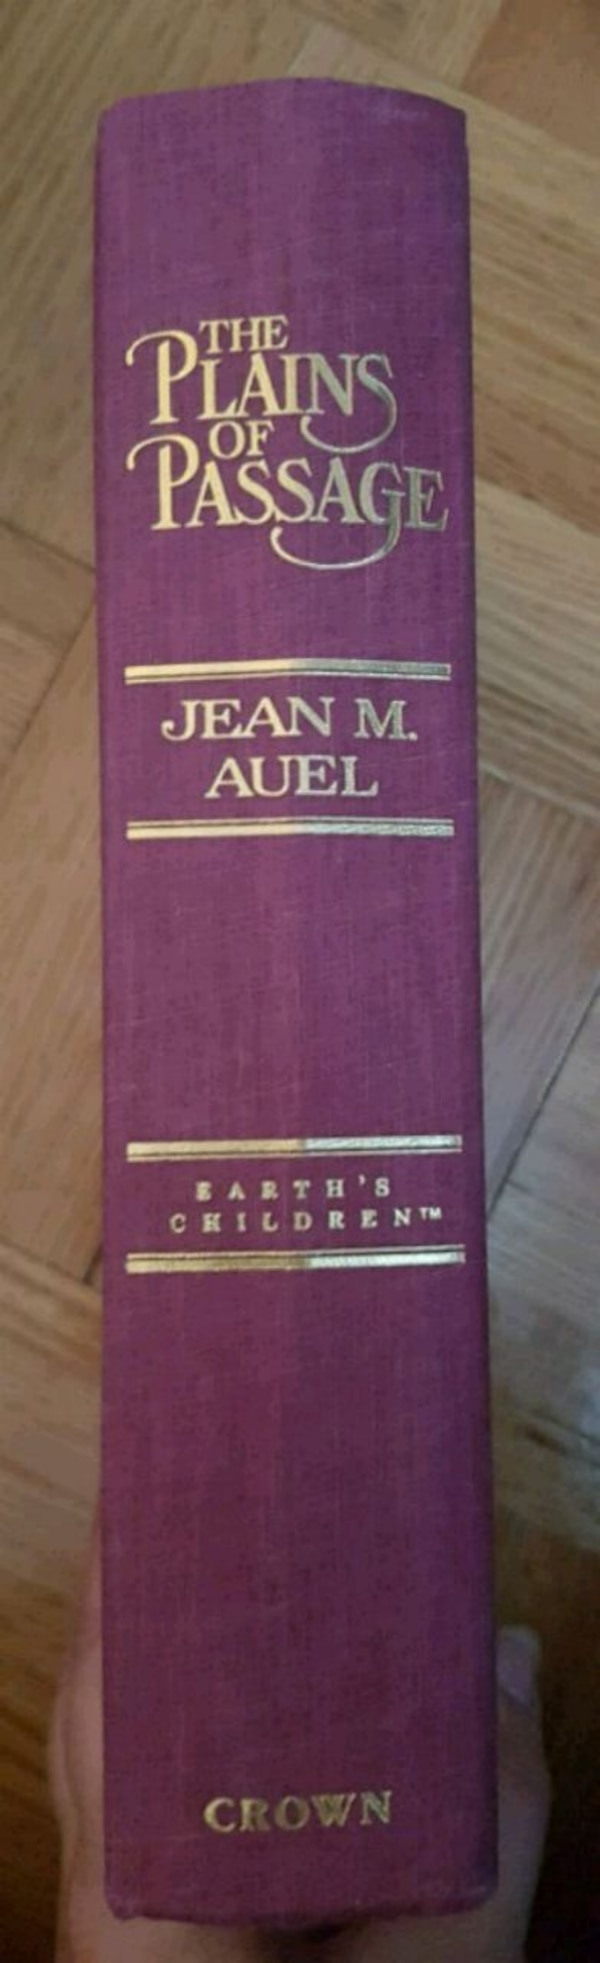 The Plains of Passage - by Jean M. Auel 20ed9128-ed33-4cd9-a29c-8ca2aab29670